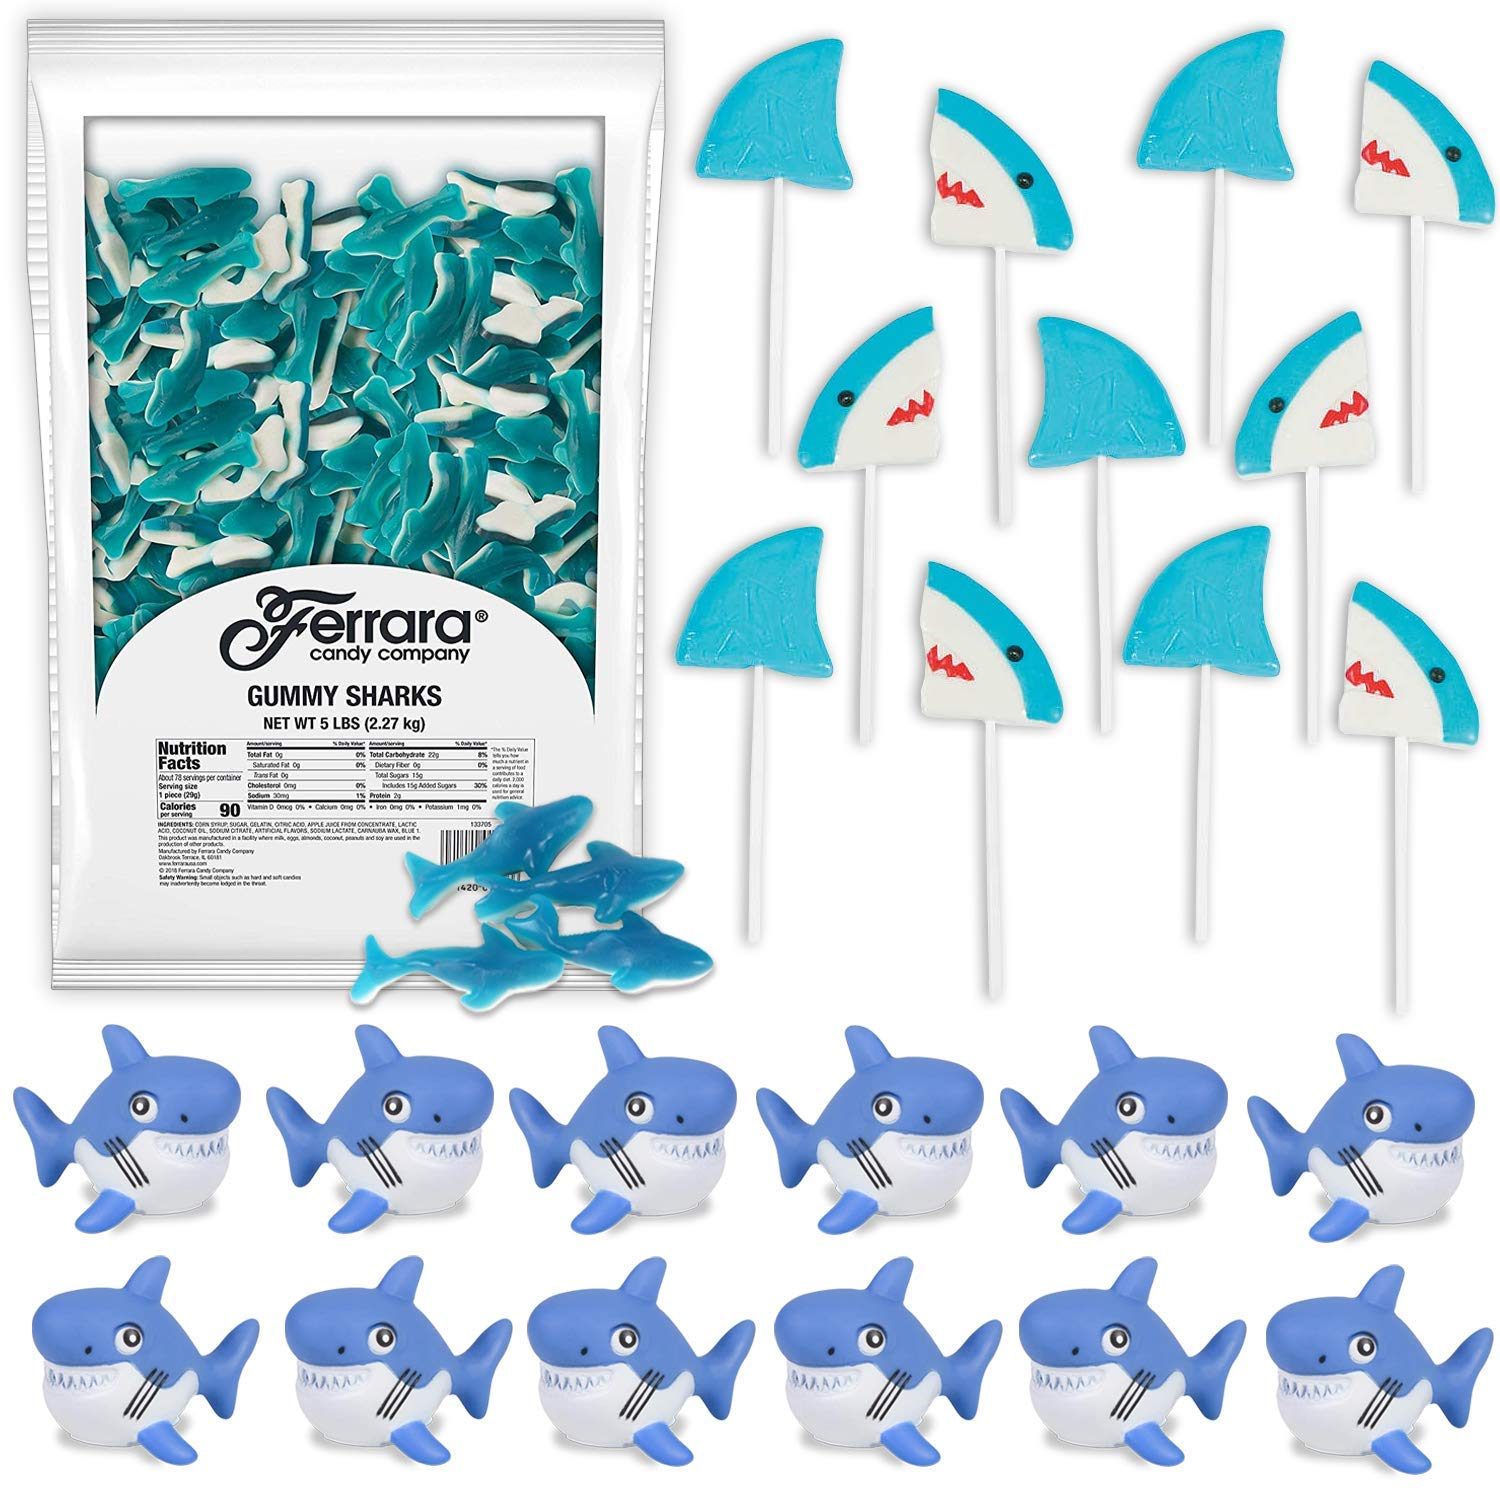 Shark Candies and Favors: 5 LB Large Gummy Sharks, 12 Shark Lollipops, 12 Rubber Water Squirting Shark - Great for Kids Birthday Party Favors and Prizes, Beach and Pool Parties by HeroFiber